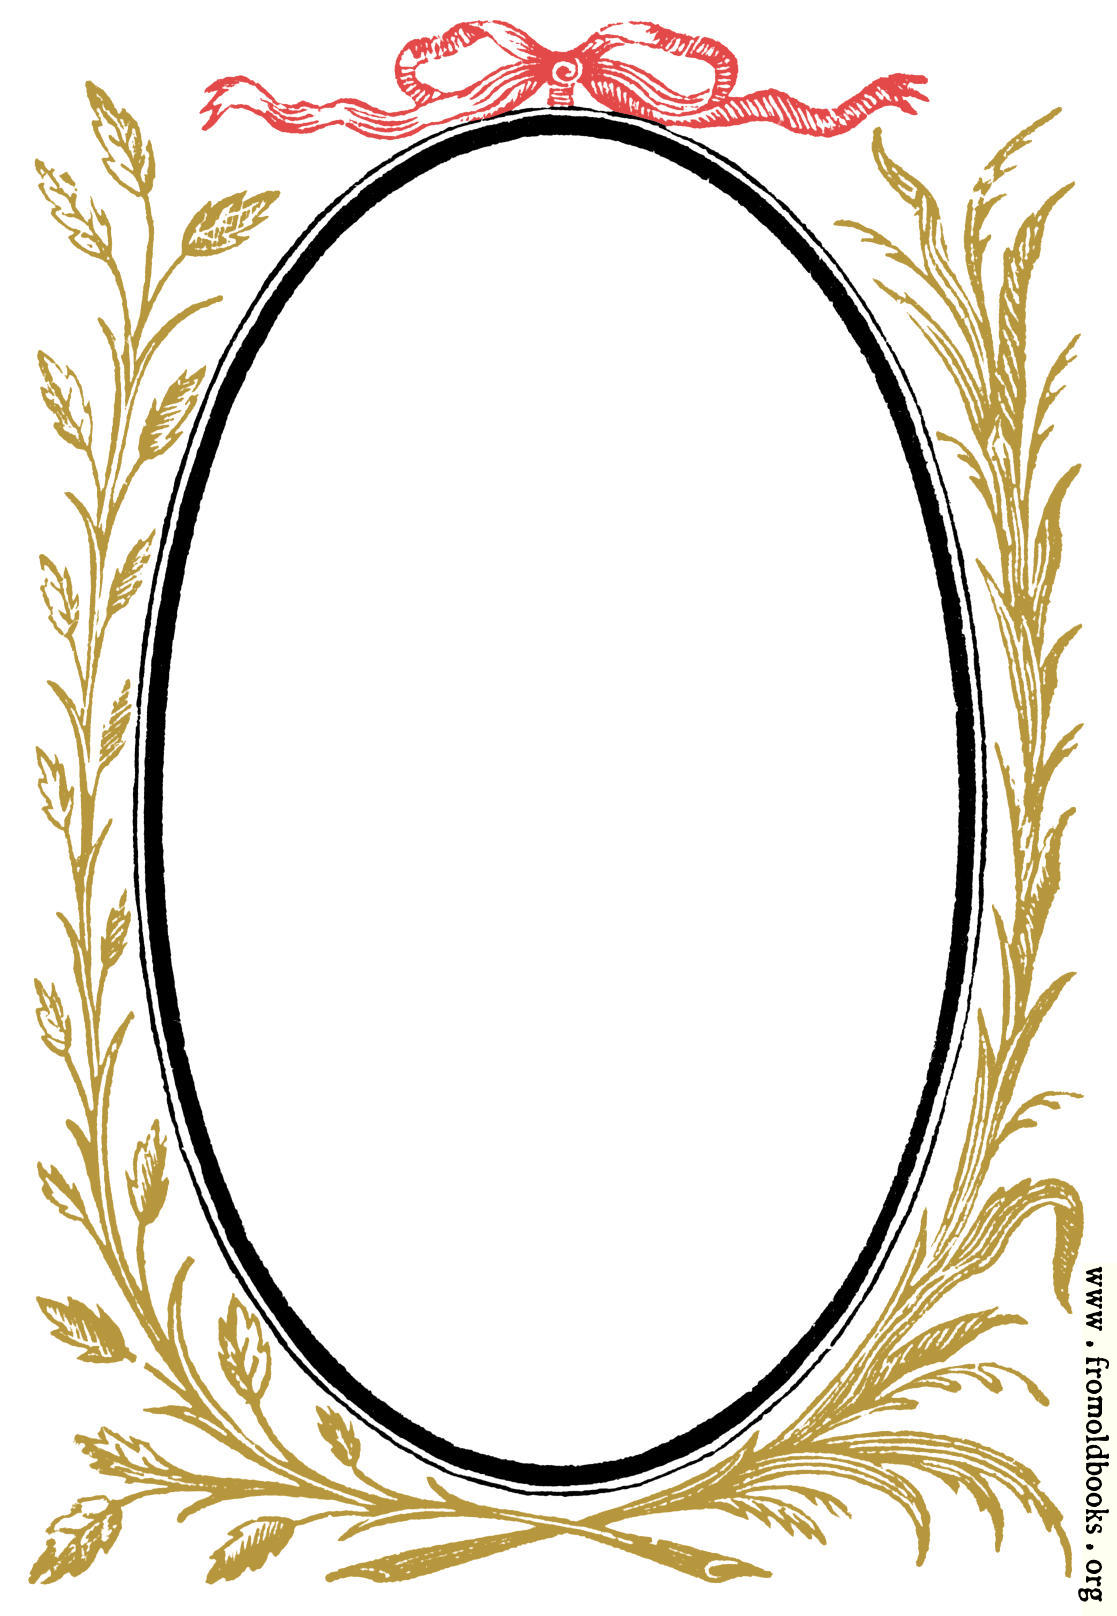 892 Oval Frame With Leafy Branches